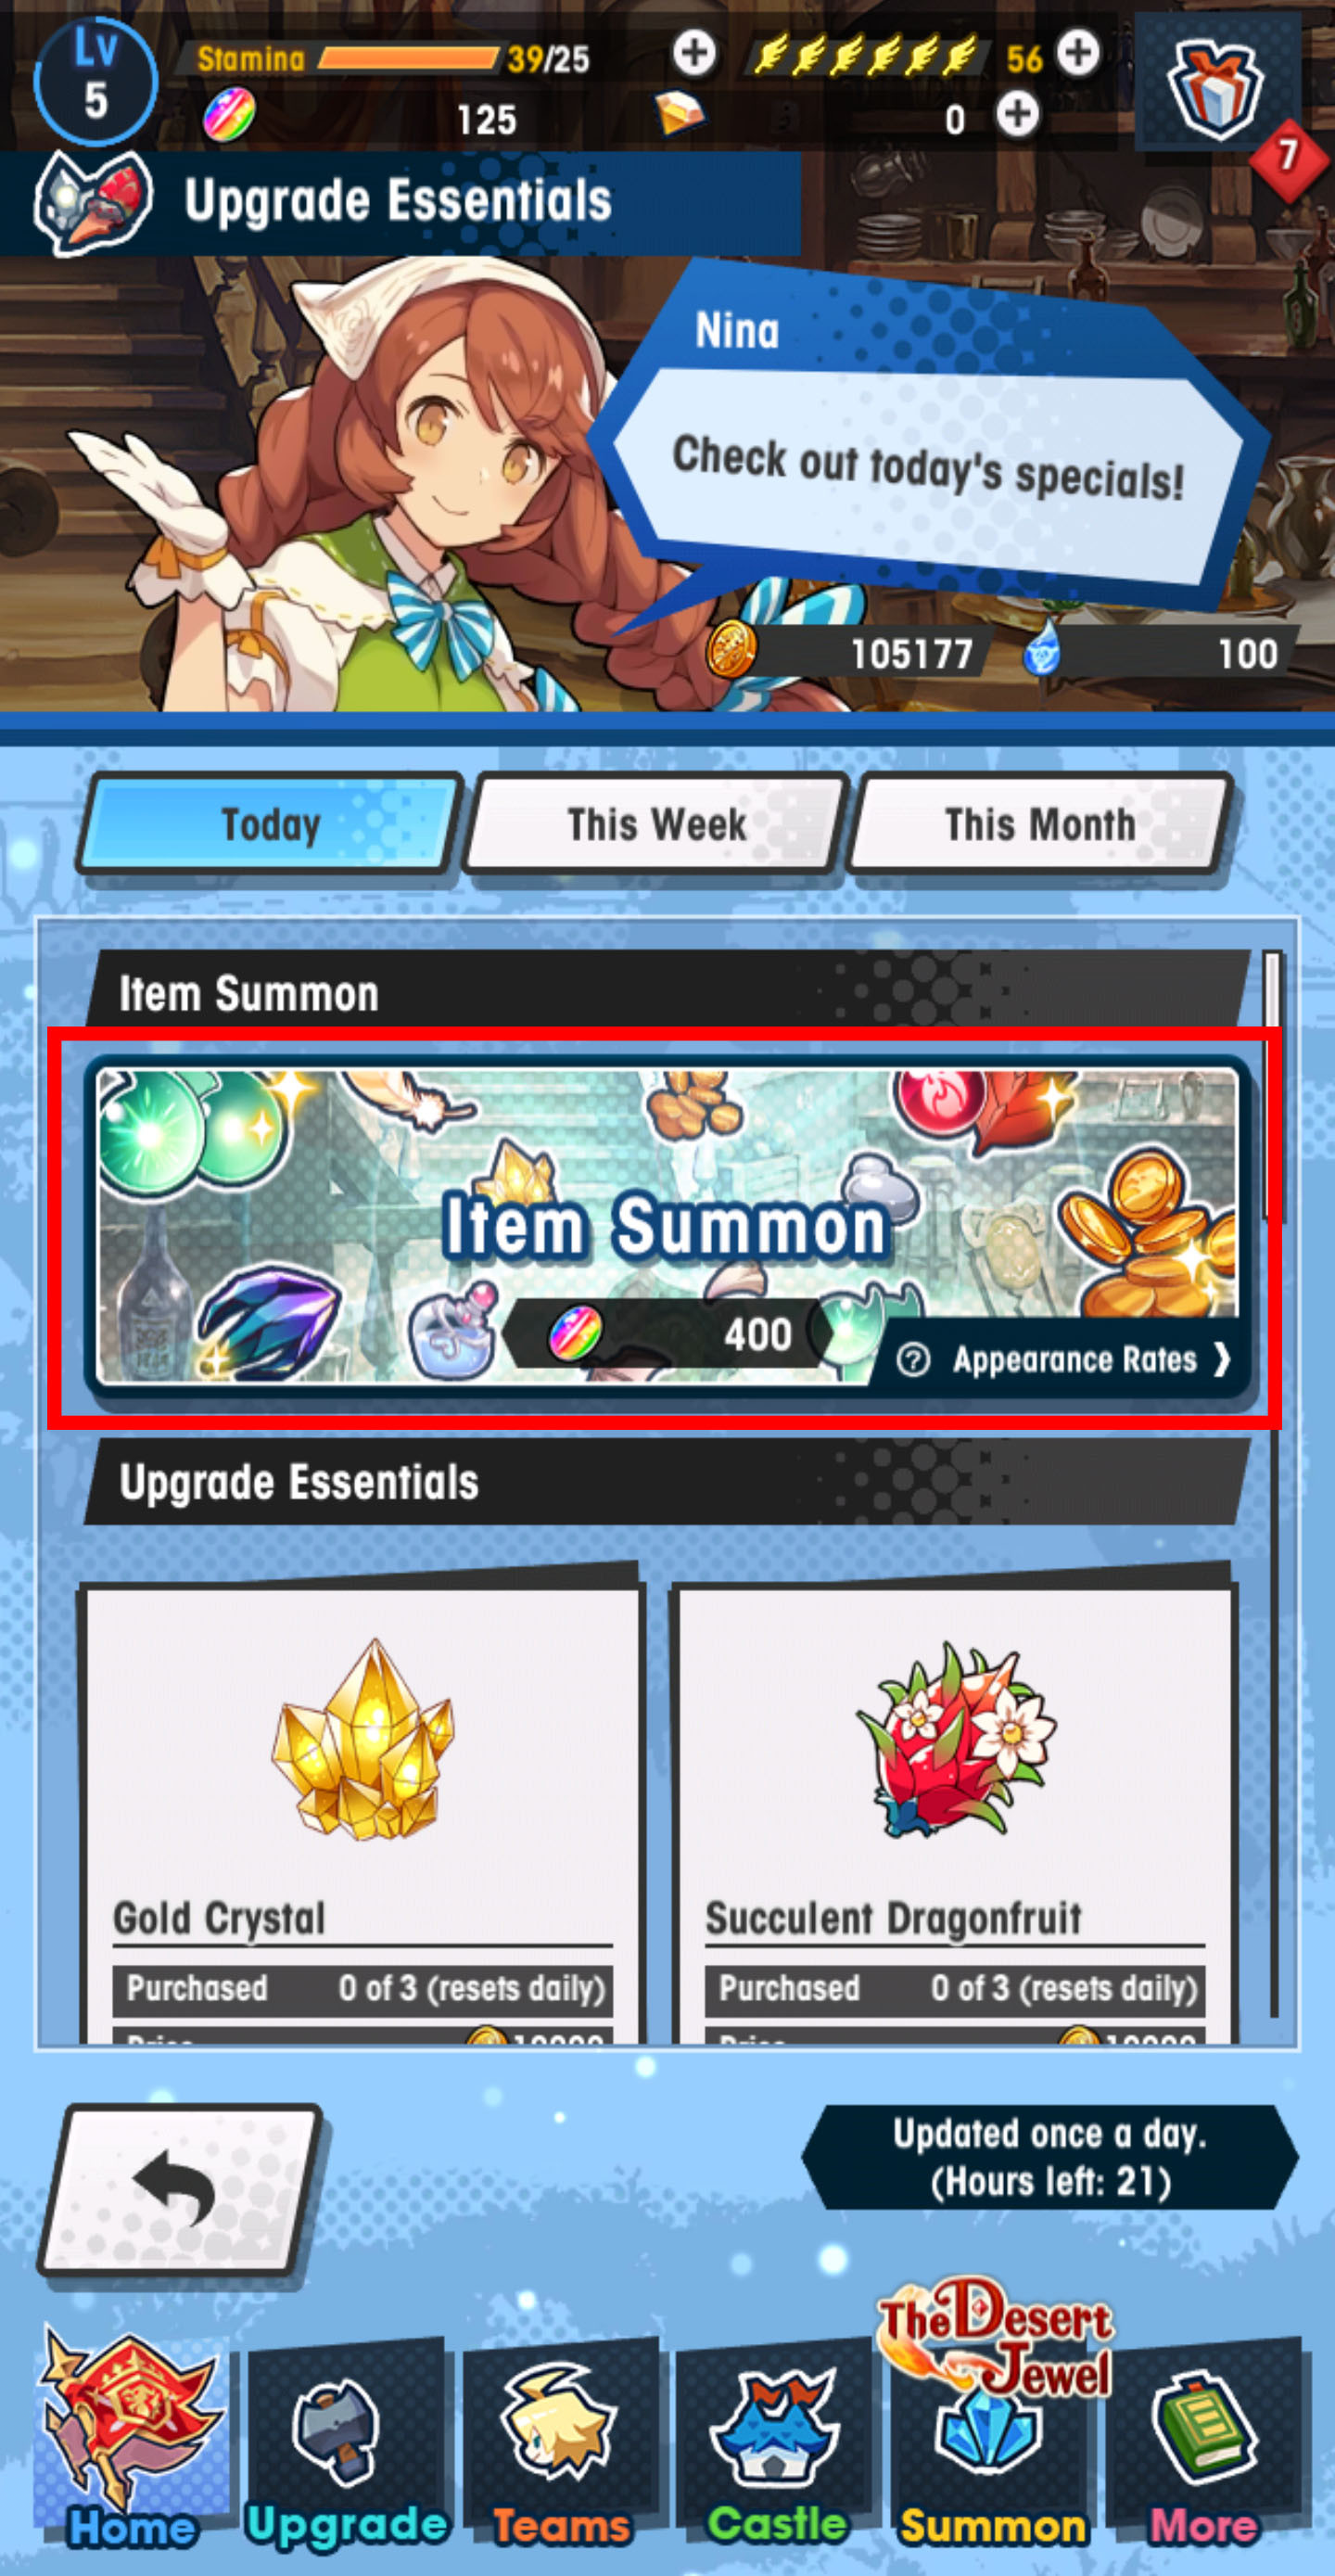 Summon items 3